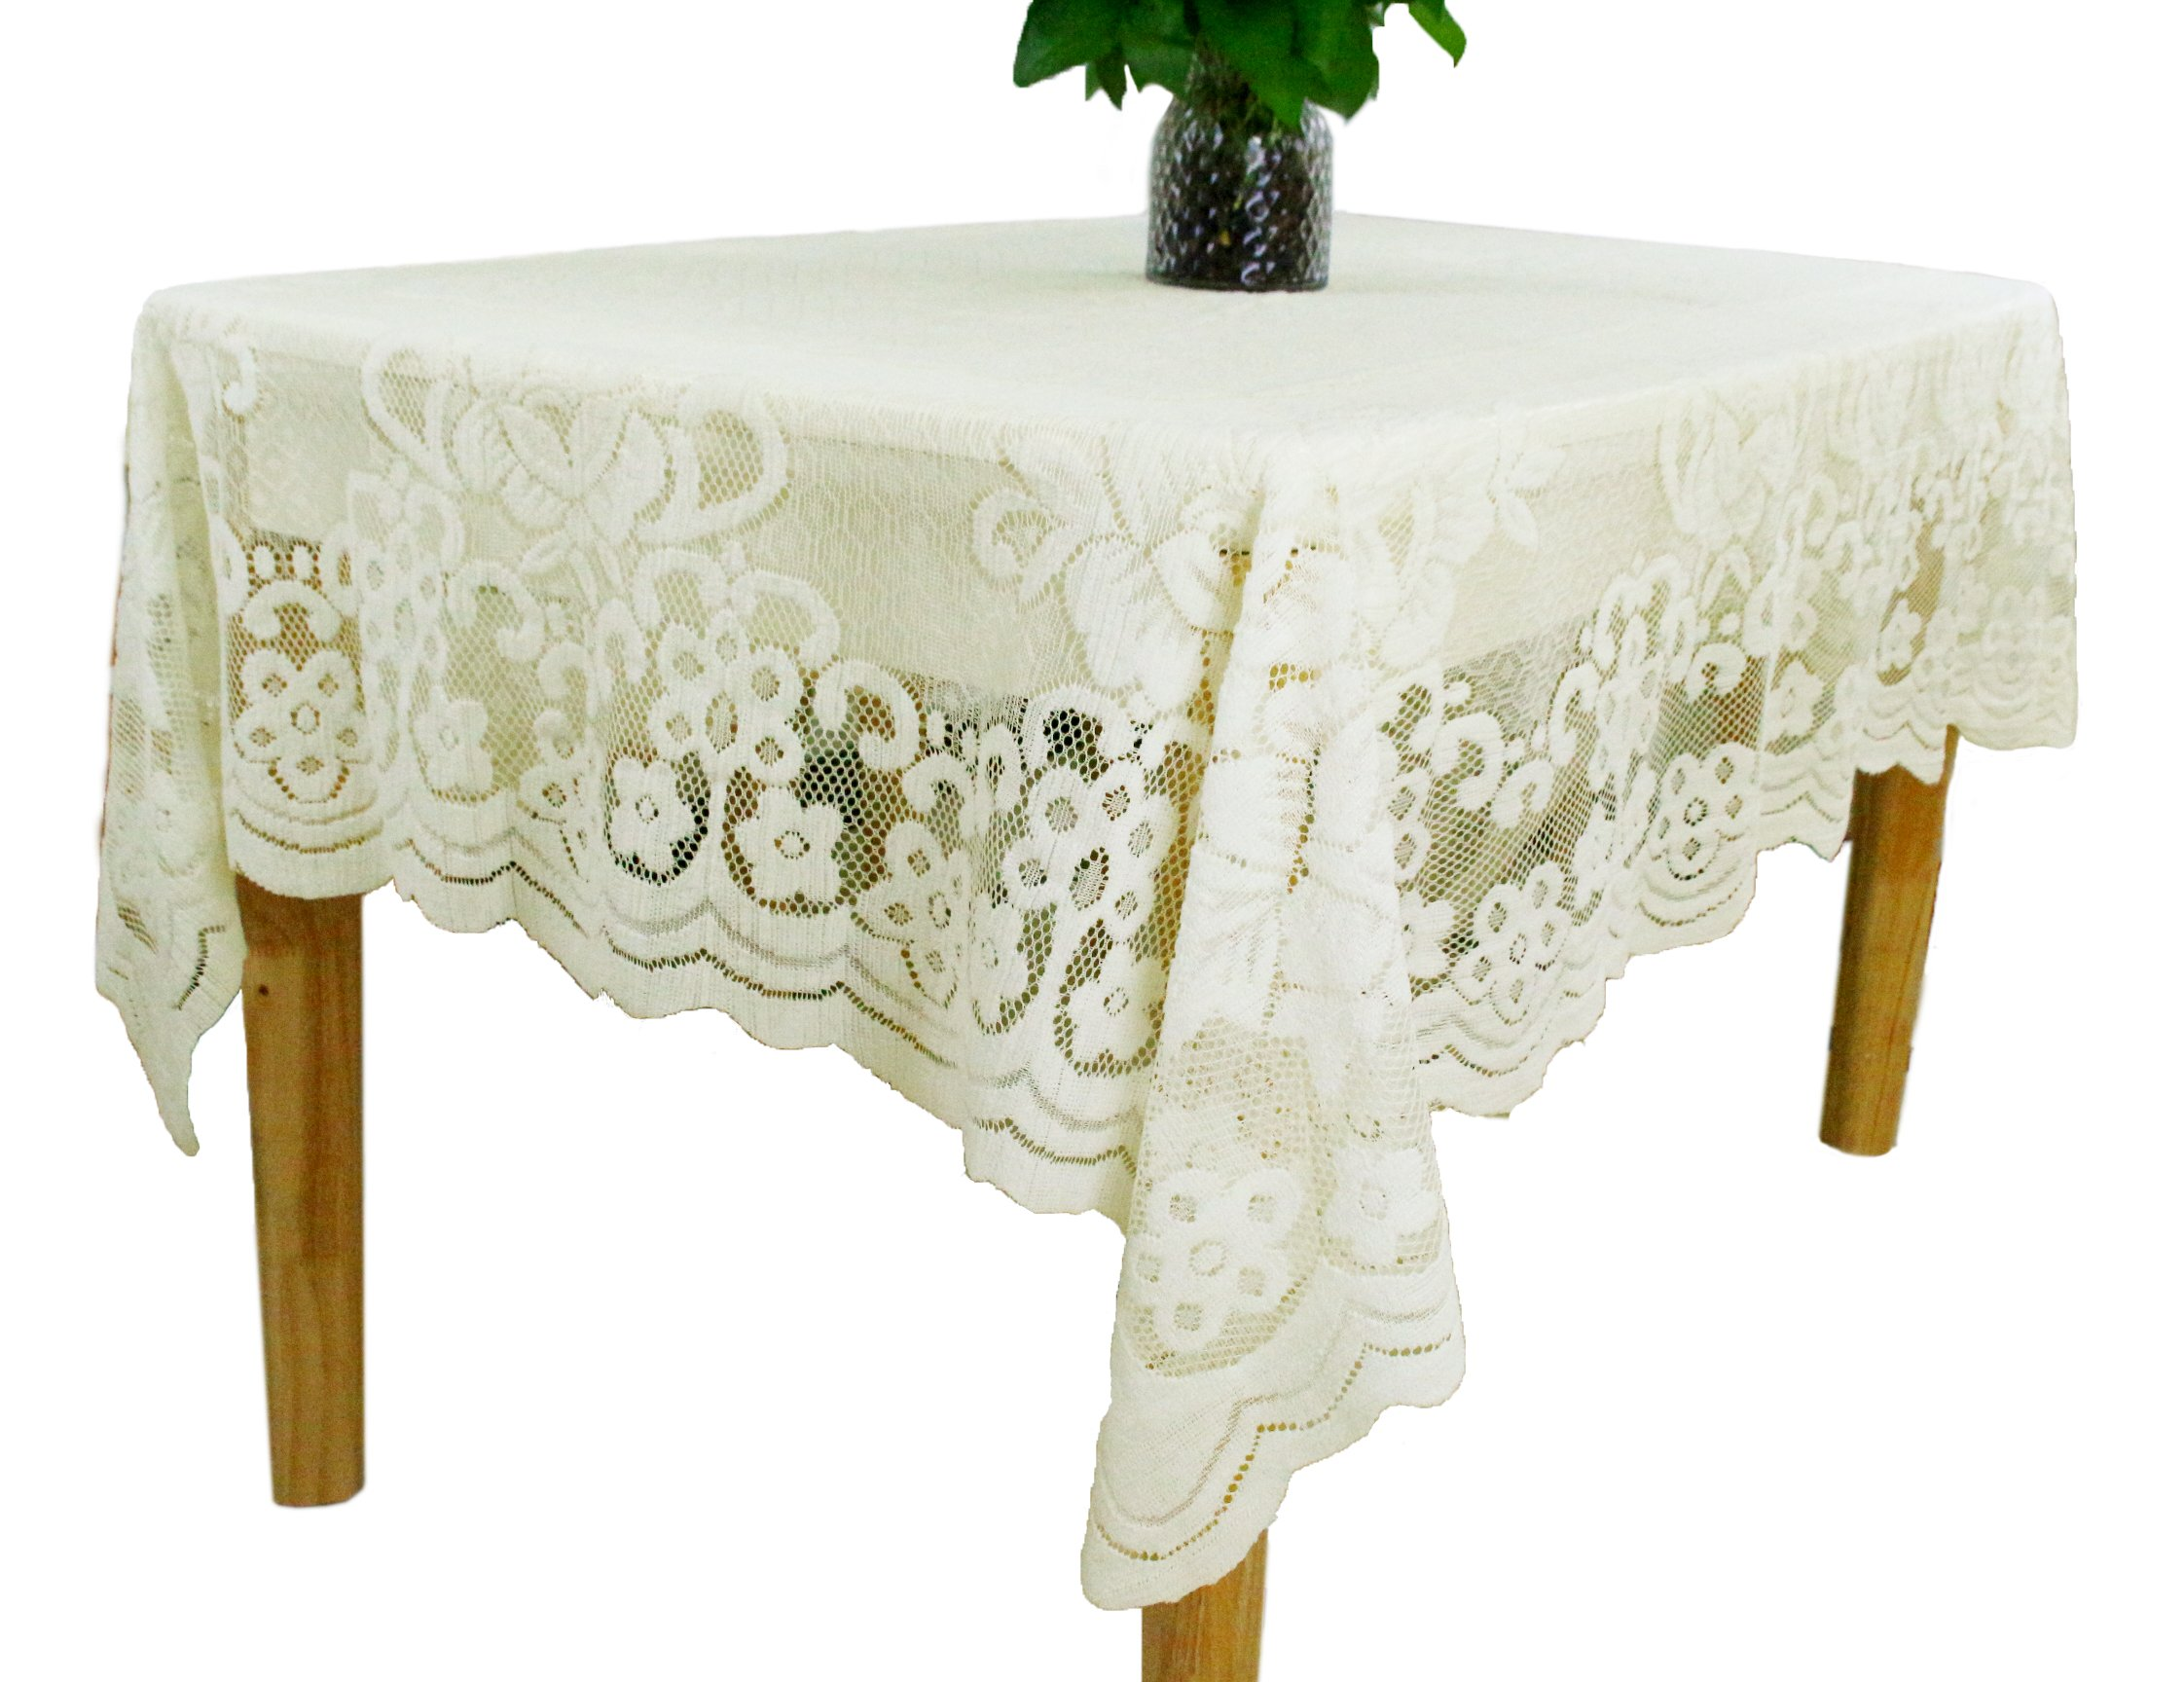 GEFEII Kitchen Tablecloths For Rectangle Tables White Lace Linen Tablecloth Oblong Size 60'' X 104'' For Party Banquet Dining Wedding Decorations